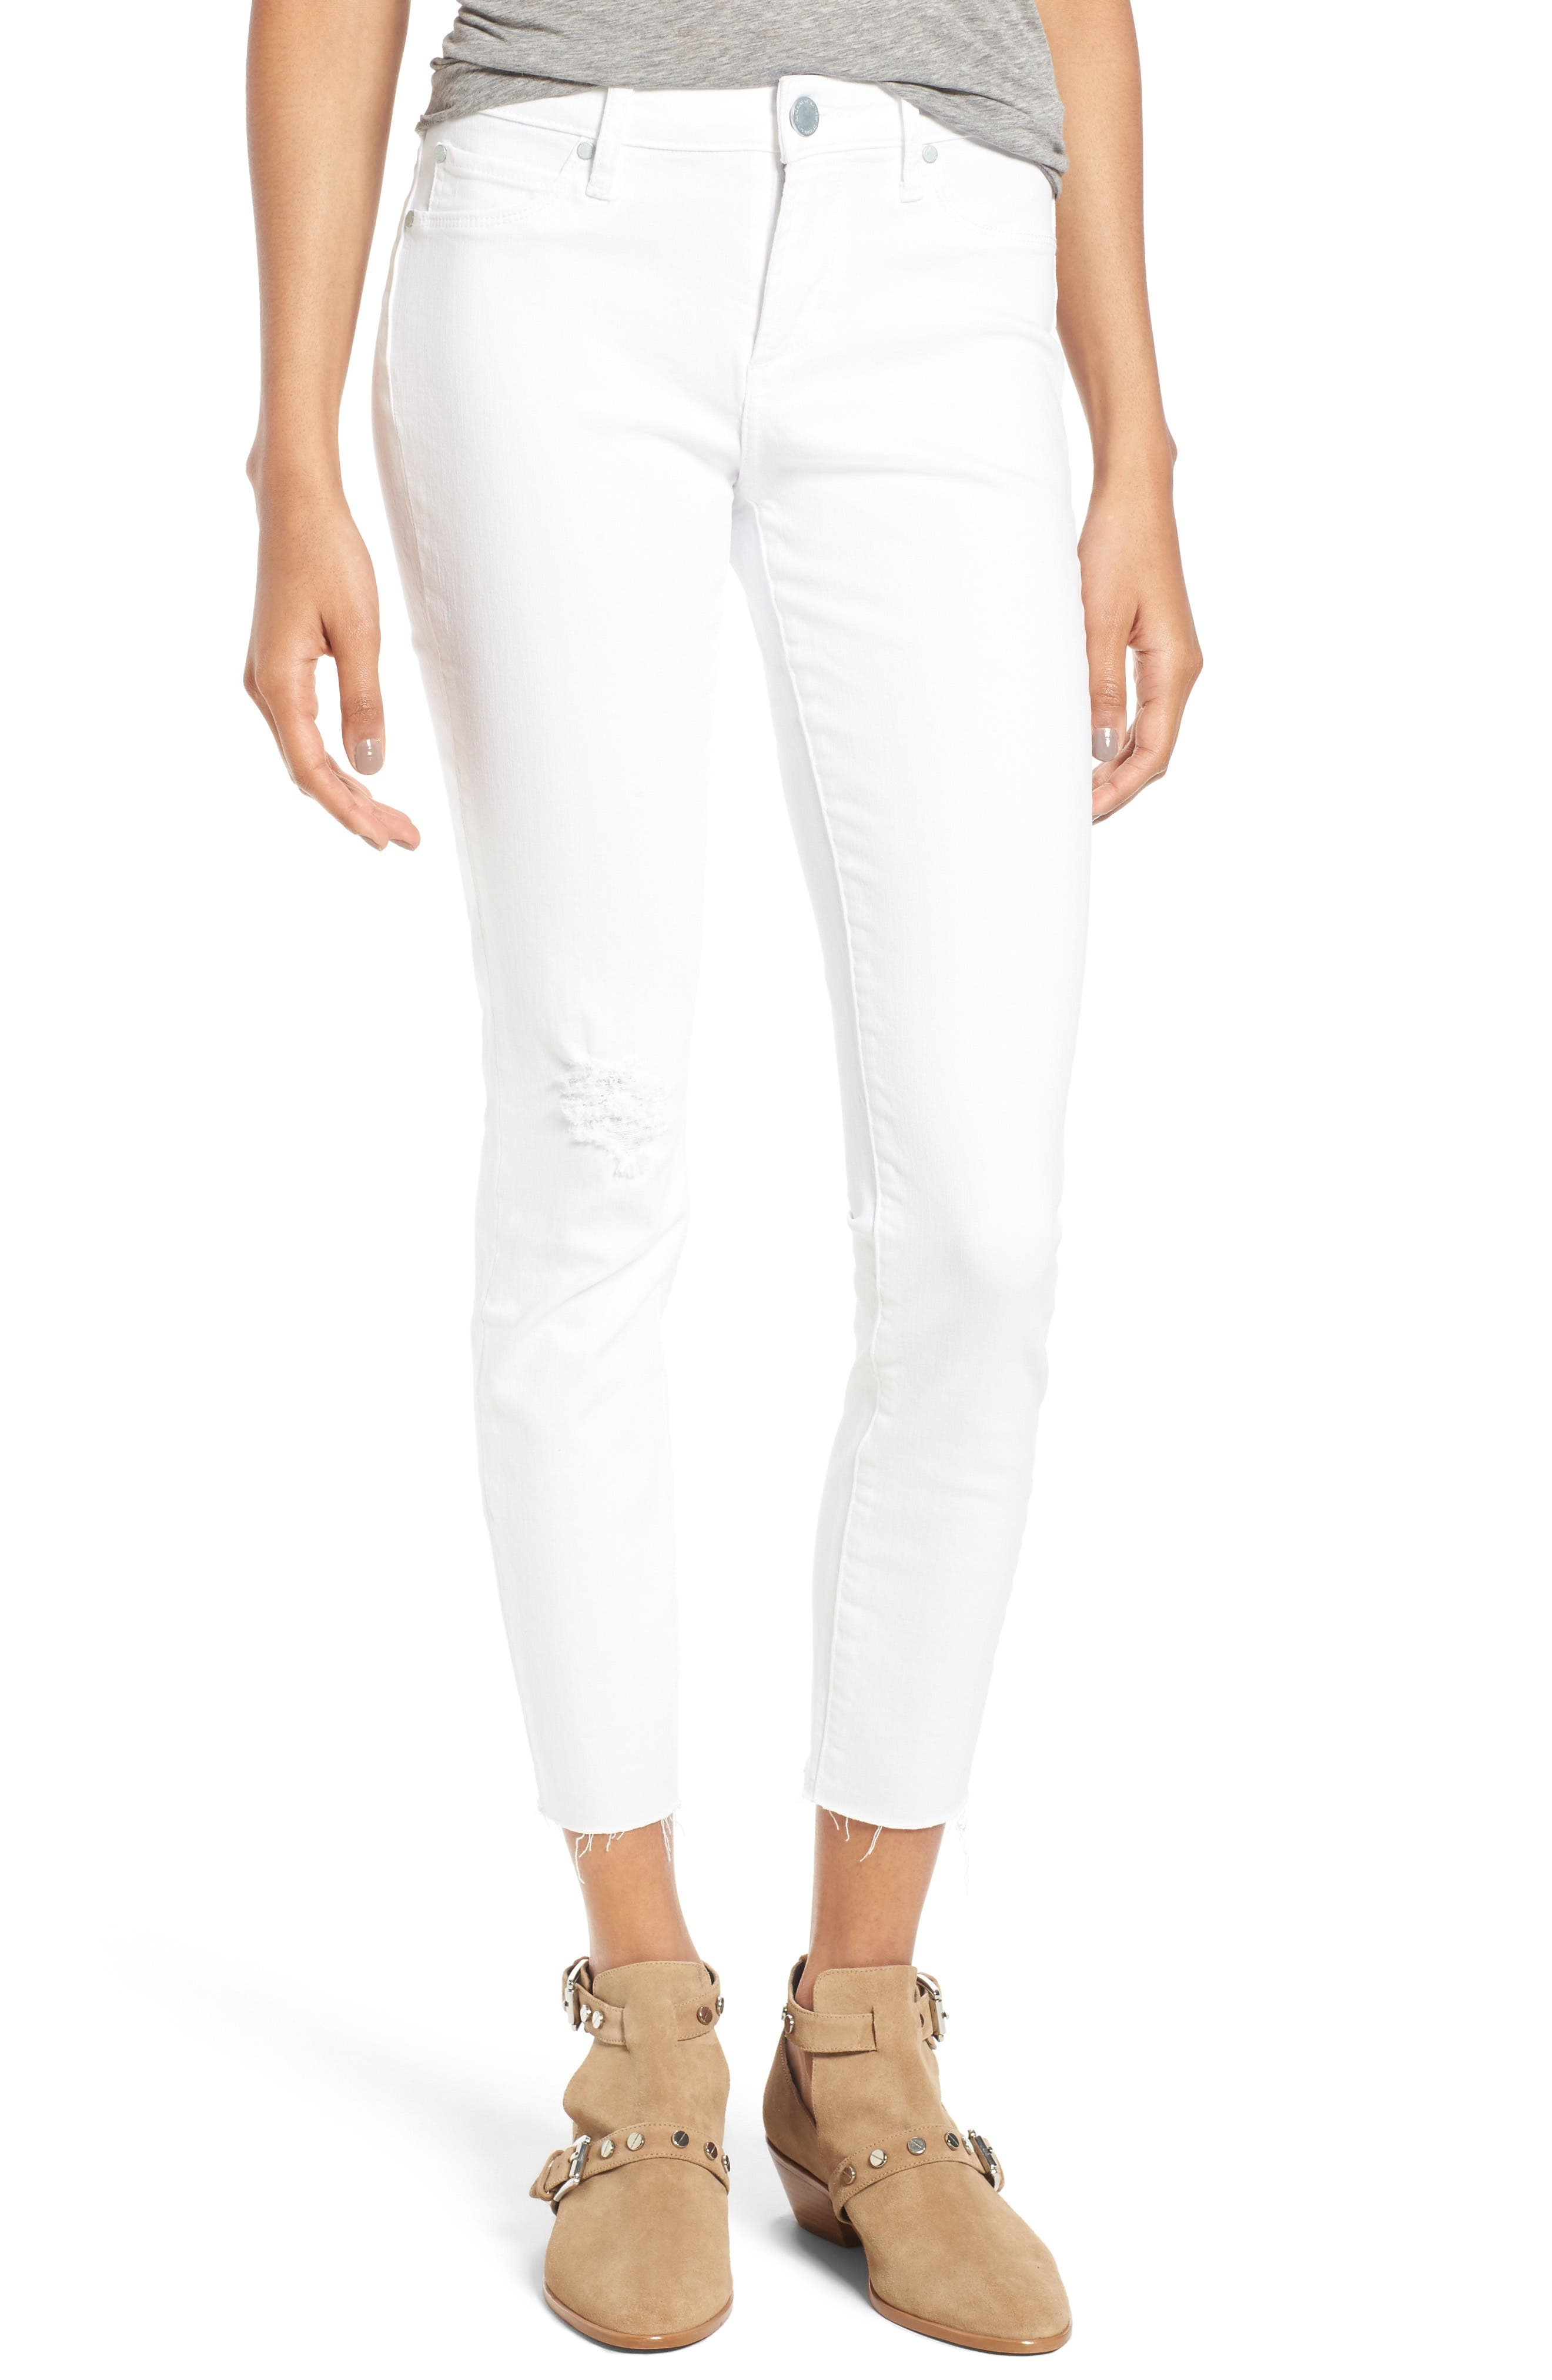 Articles of Society Carly Skinny Crop Jeans (Whiteout)